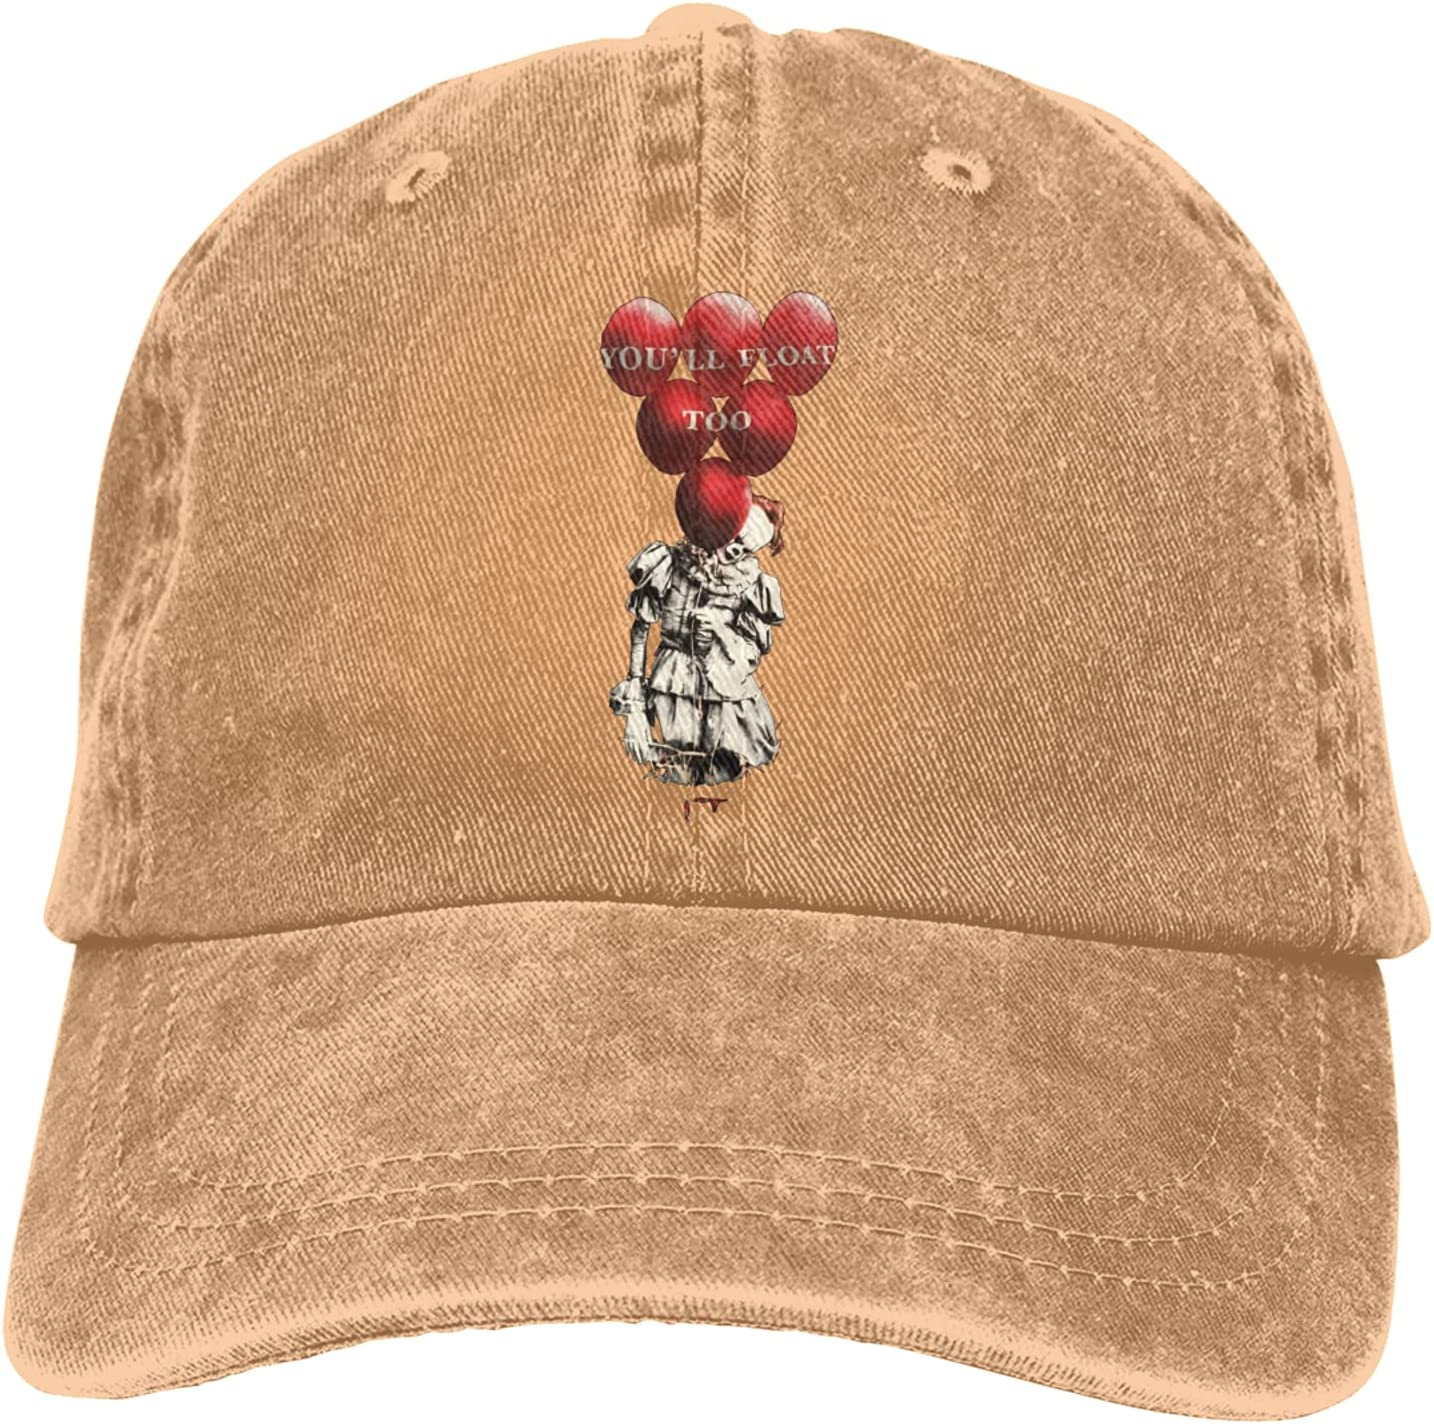 It Pennywise Clown Cowboy Hat Unisex Adjustable Hat Circumference Size Pure Cotton Denim Wash Water Outdoor